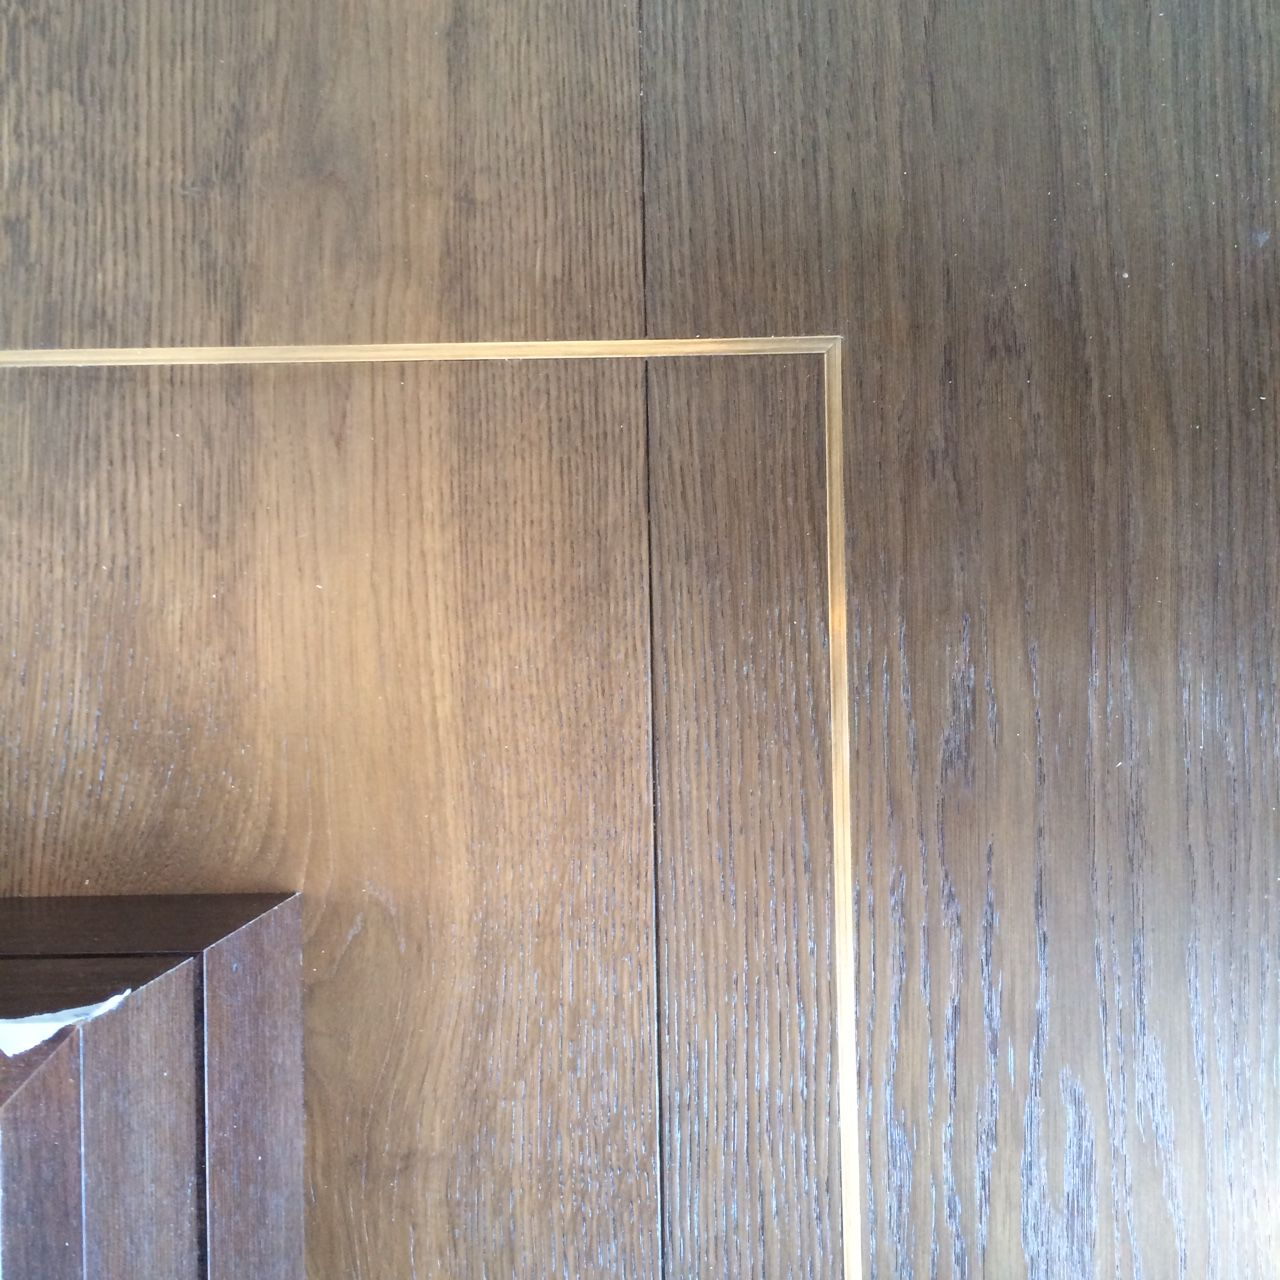 Antique Brass Inlay By Www Element7 Co Uk Grey Wood Floors